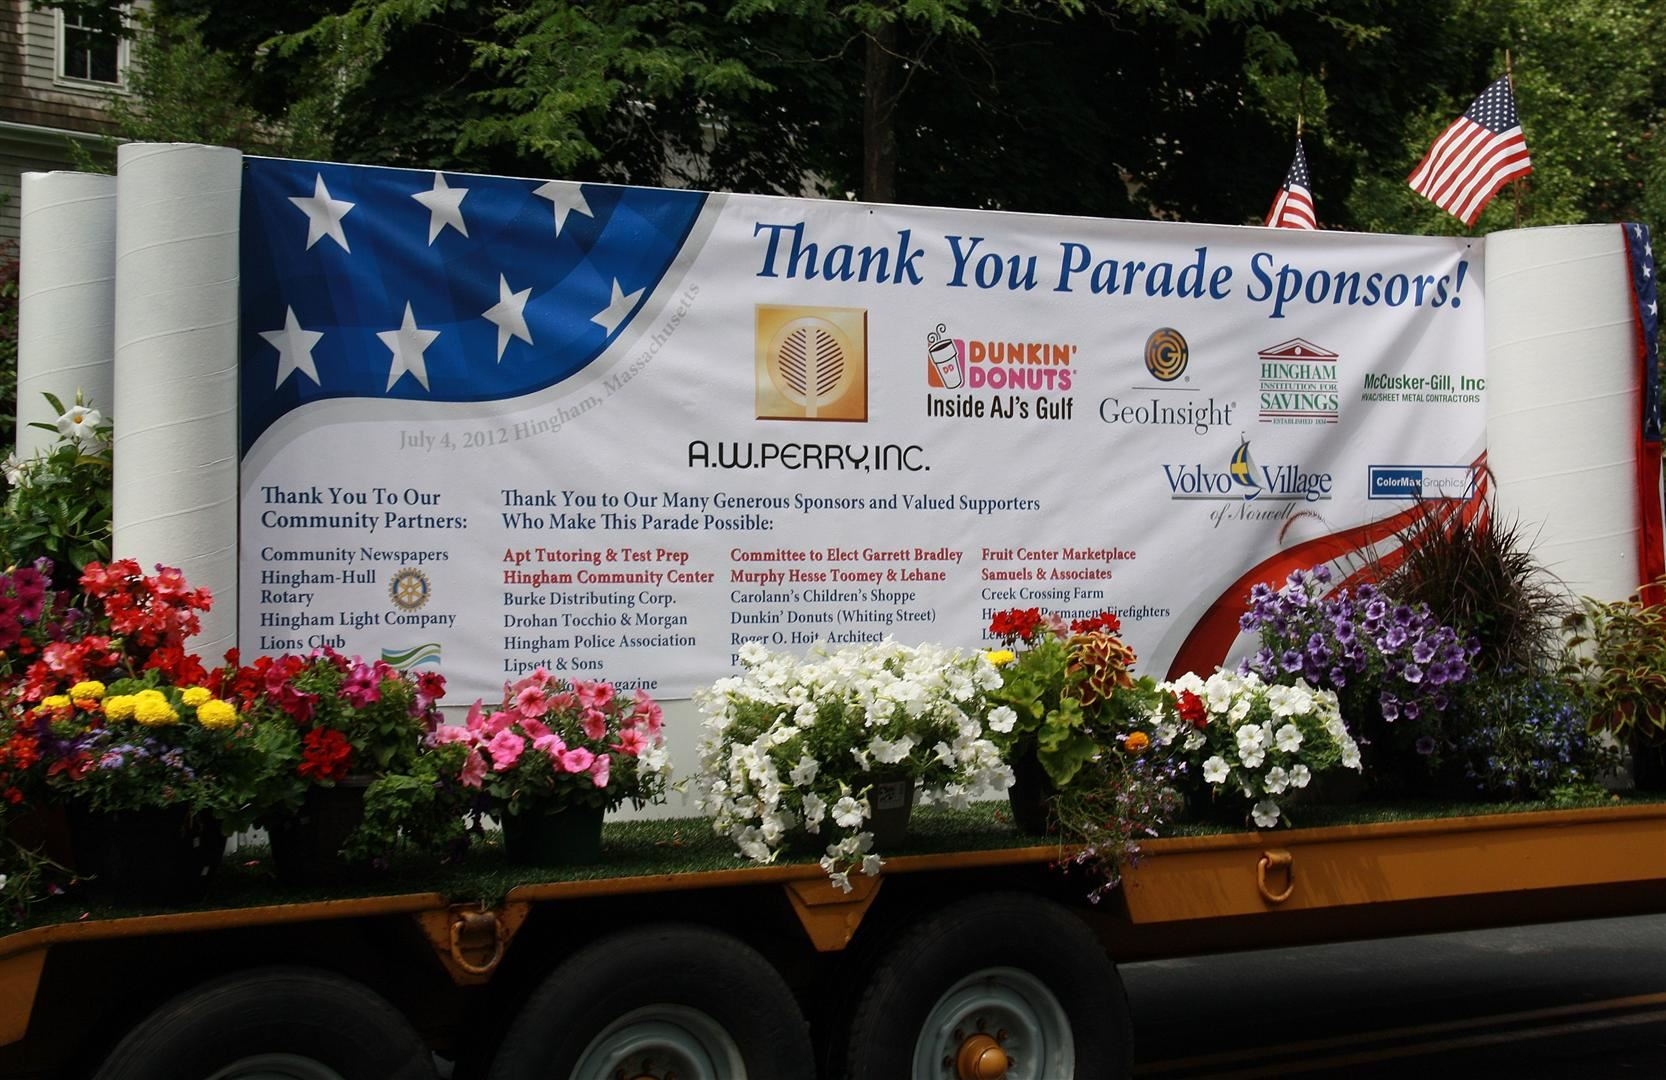 Thank you to all of our 4th of July Parade Sponsor